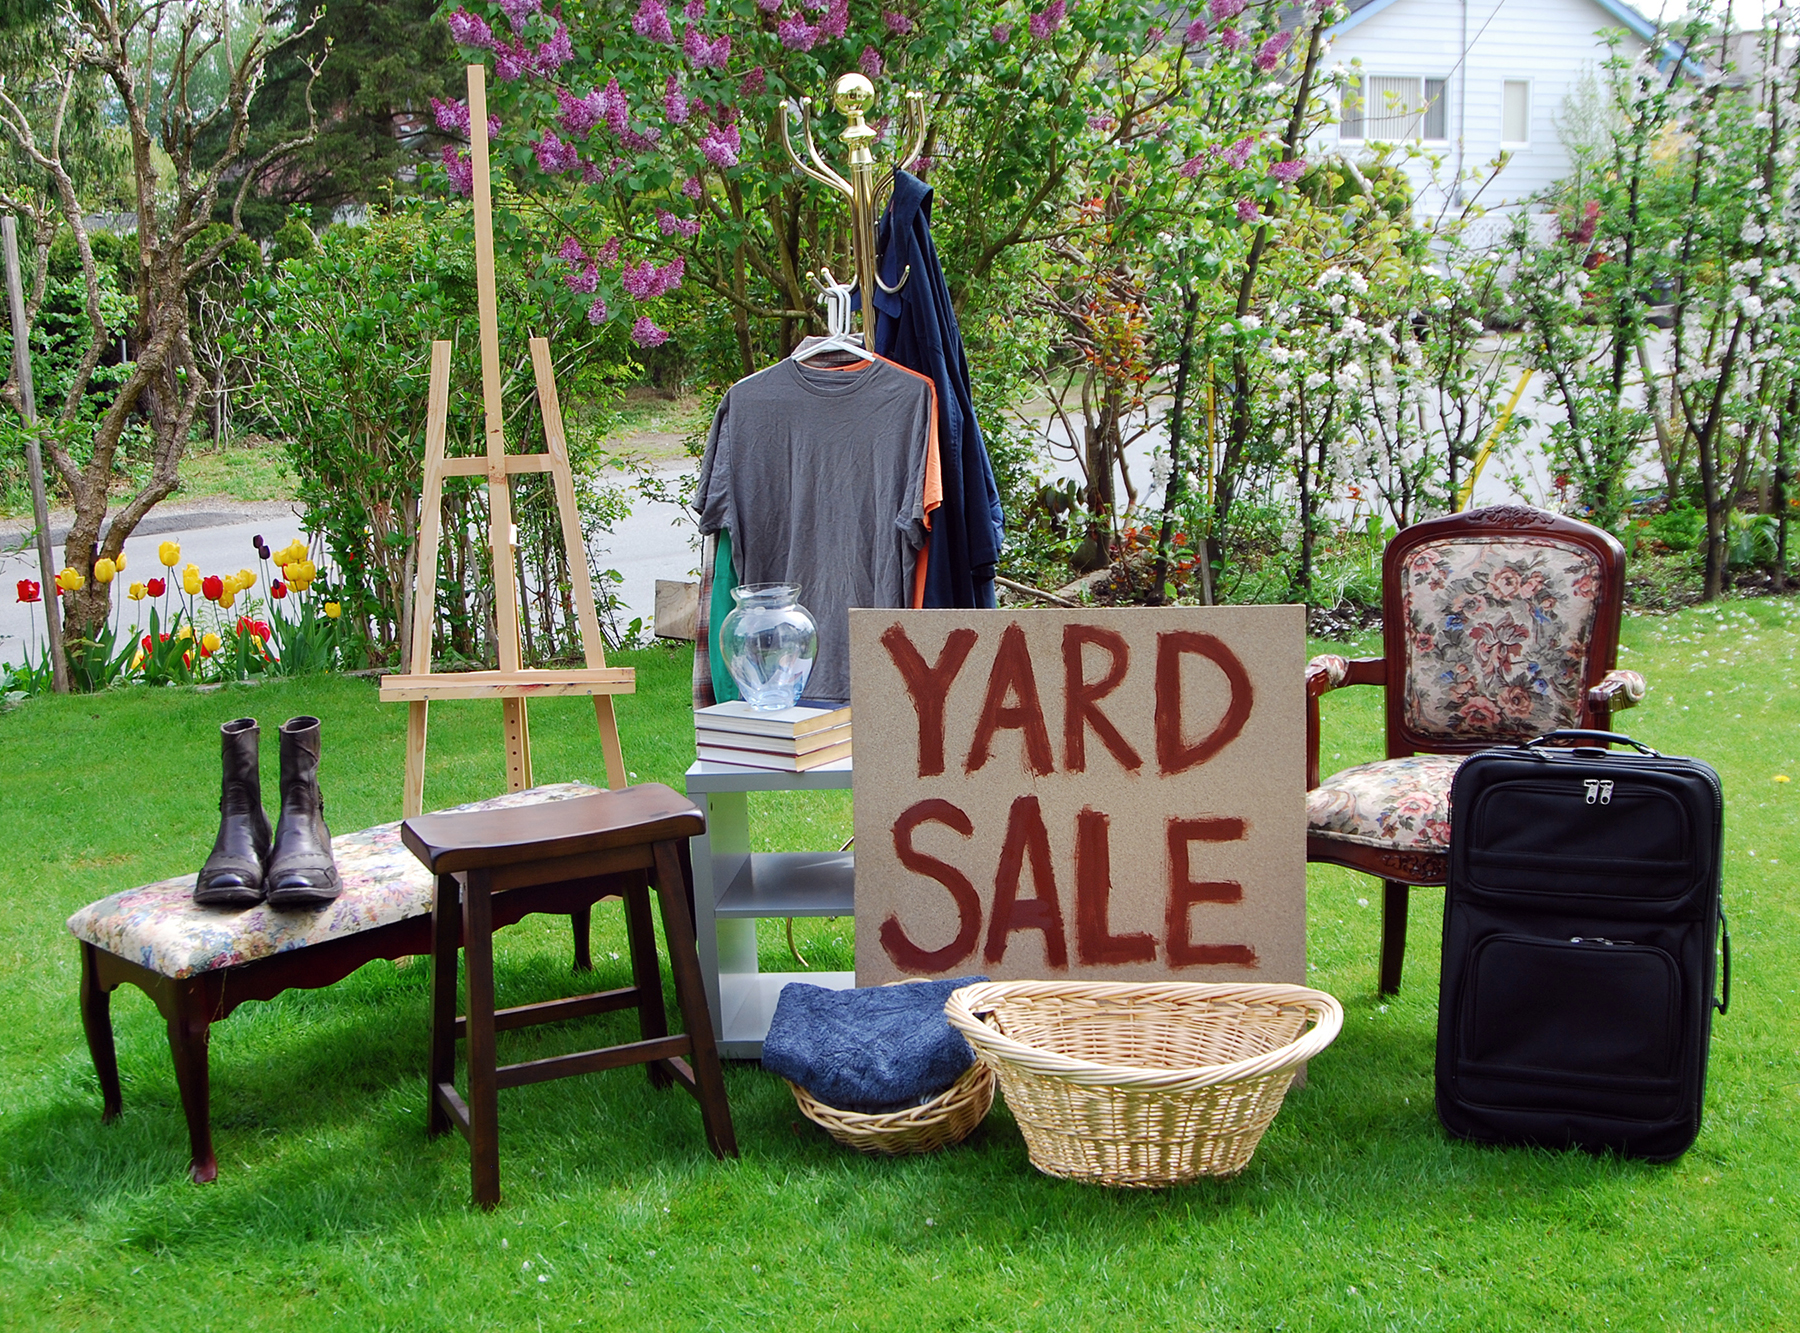 Yard sale with items for sale, sign